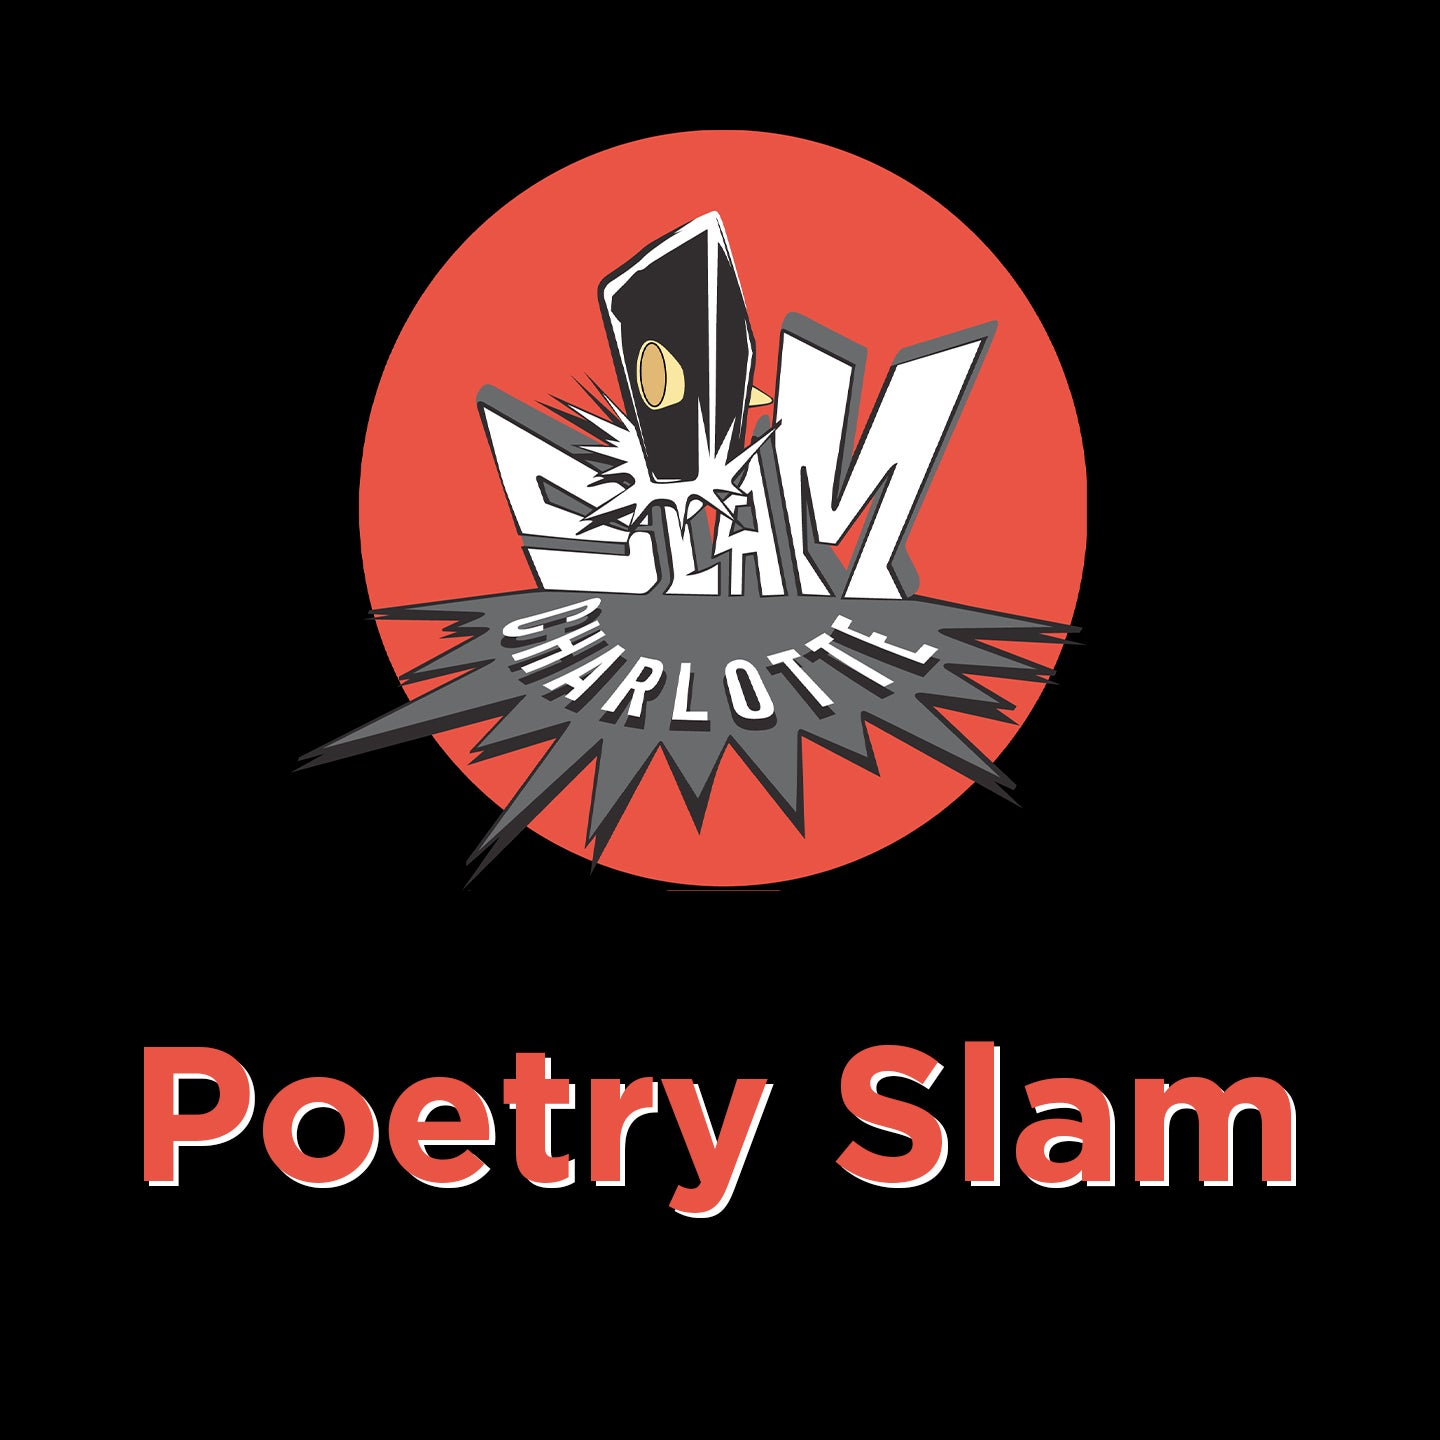 SlamCharlotte Poetry Slam